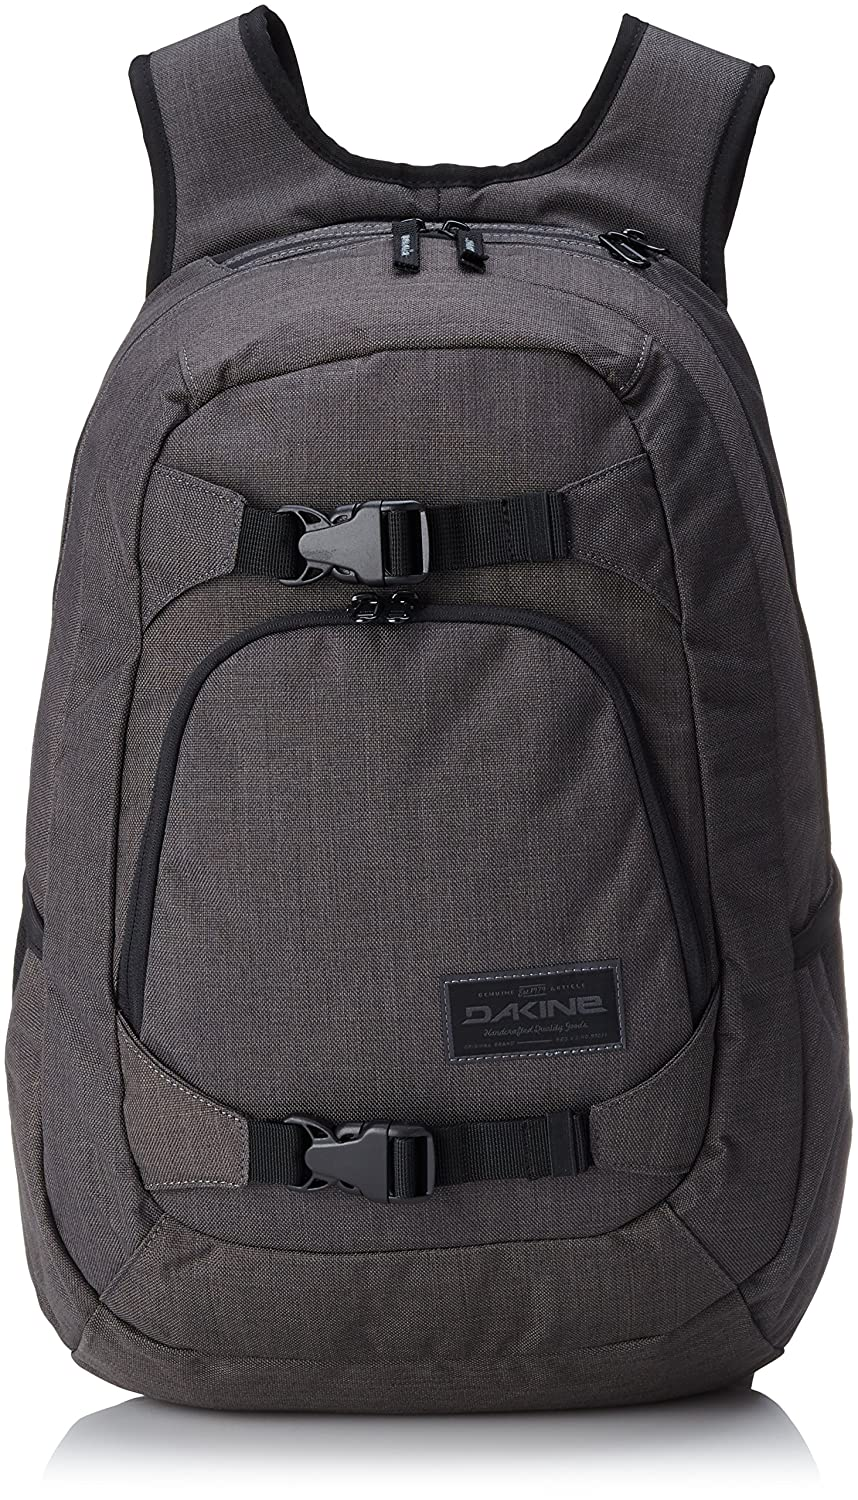 Amazon.com : Dakine Explorer Laptop Backpack : Sports & Outdoors